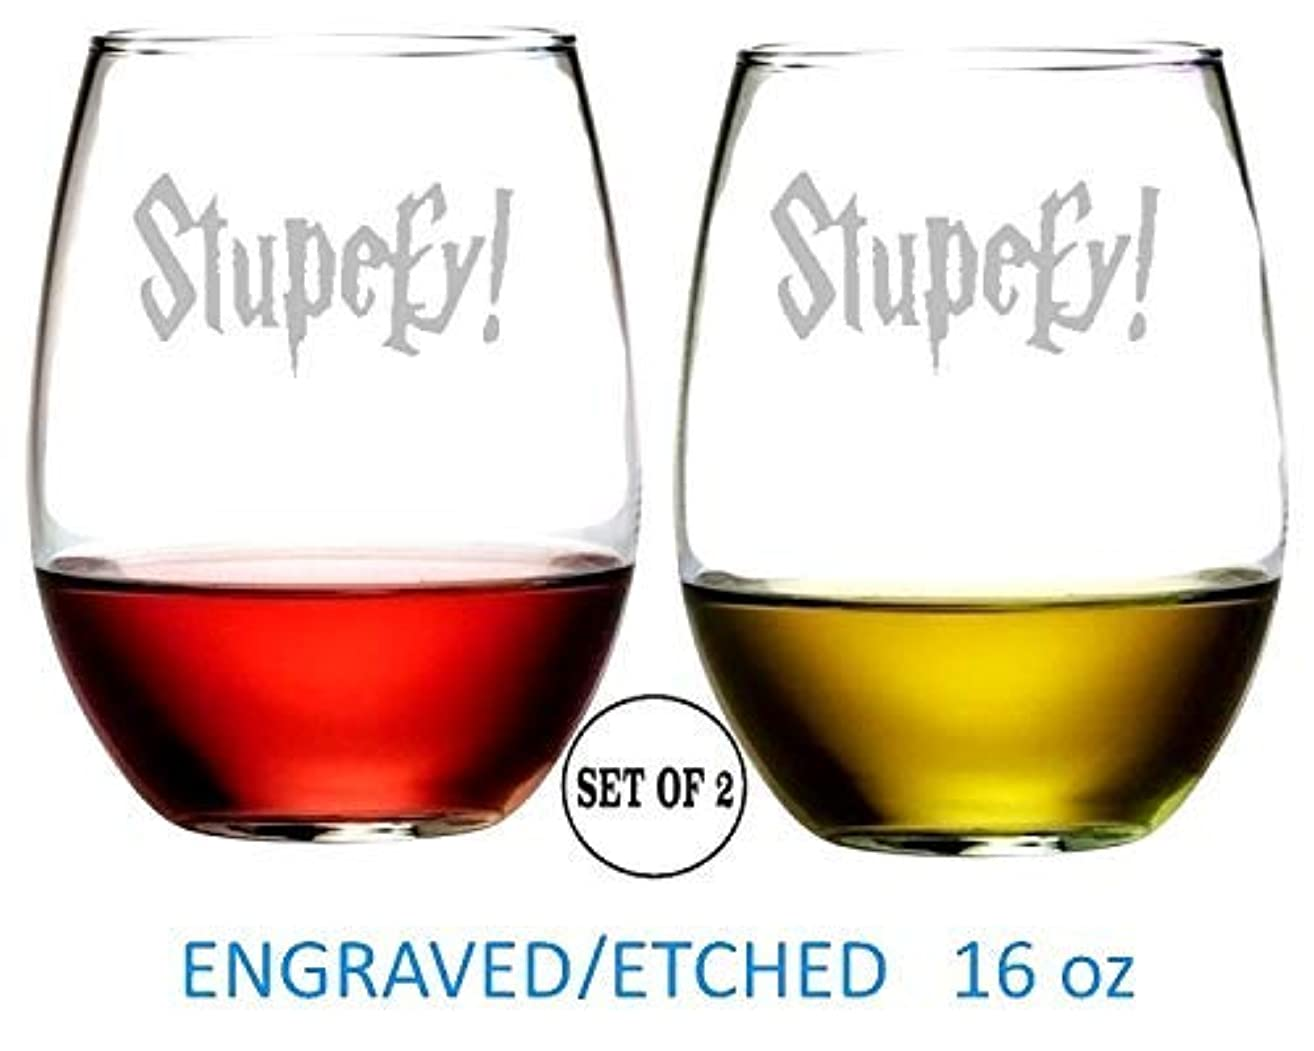 Stupefy Harry P. Inspired Stemless Wine Glasses Etched Engraved Perfect Fun Handmade Gifts for Everyone Set of 2